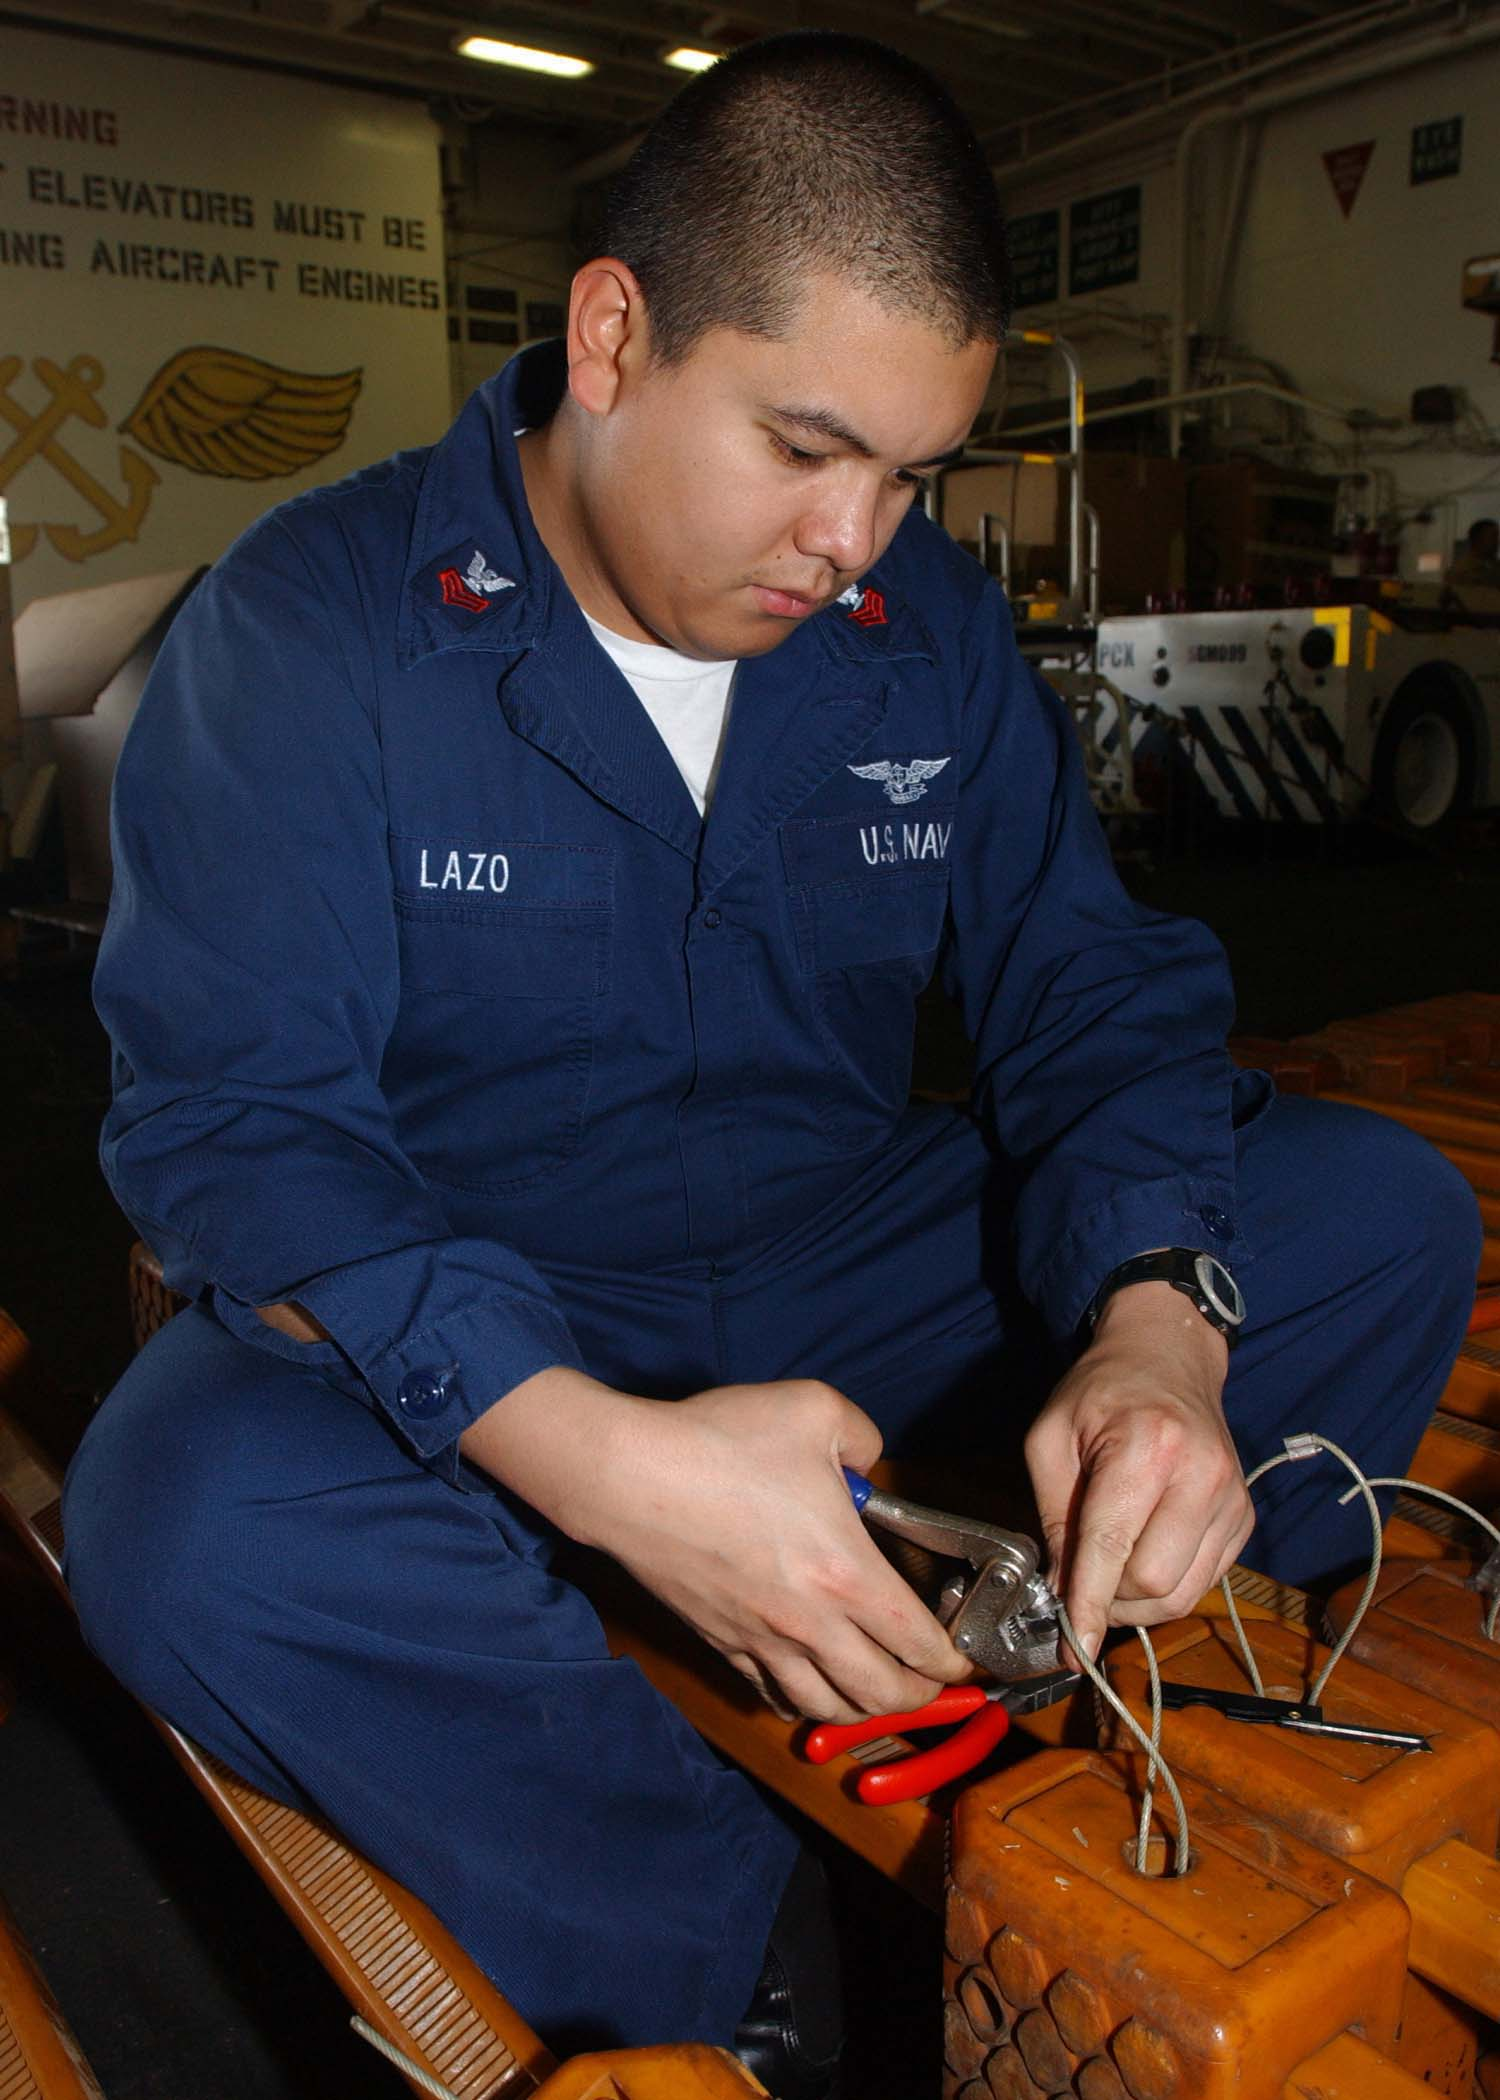 File:us navy 040227-n-0009s-001 aviation support equipment technician